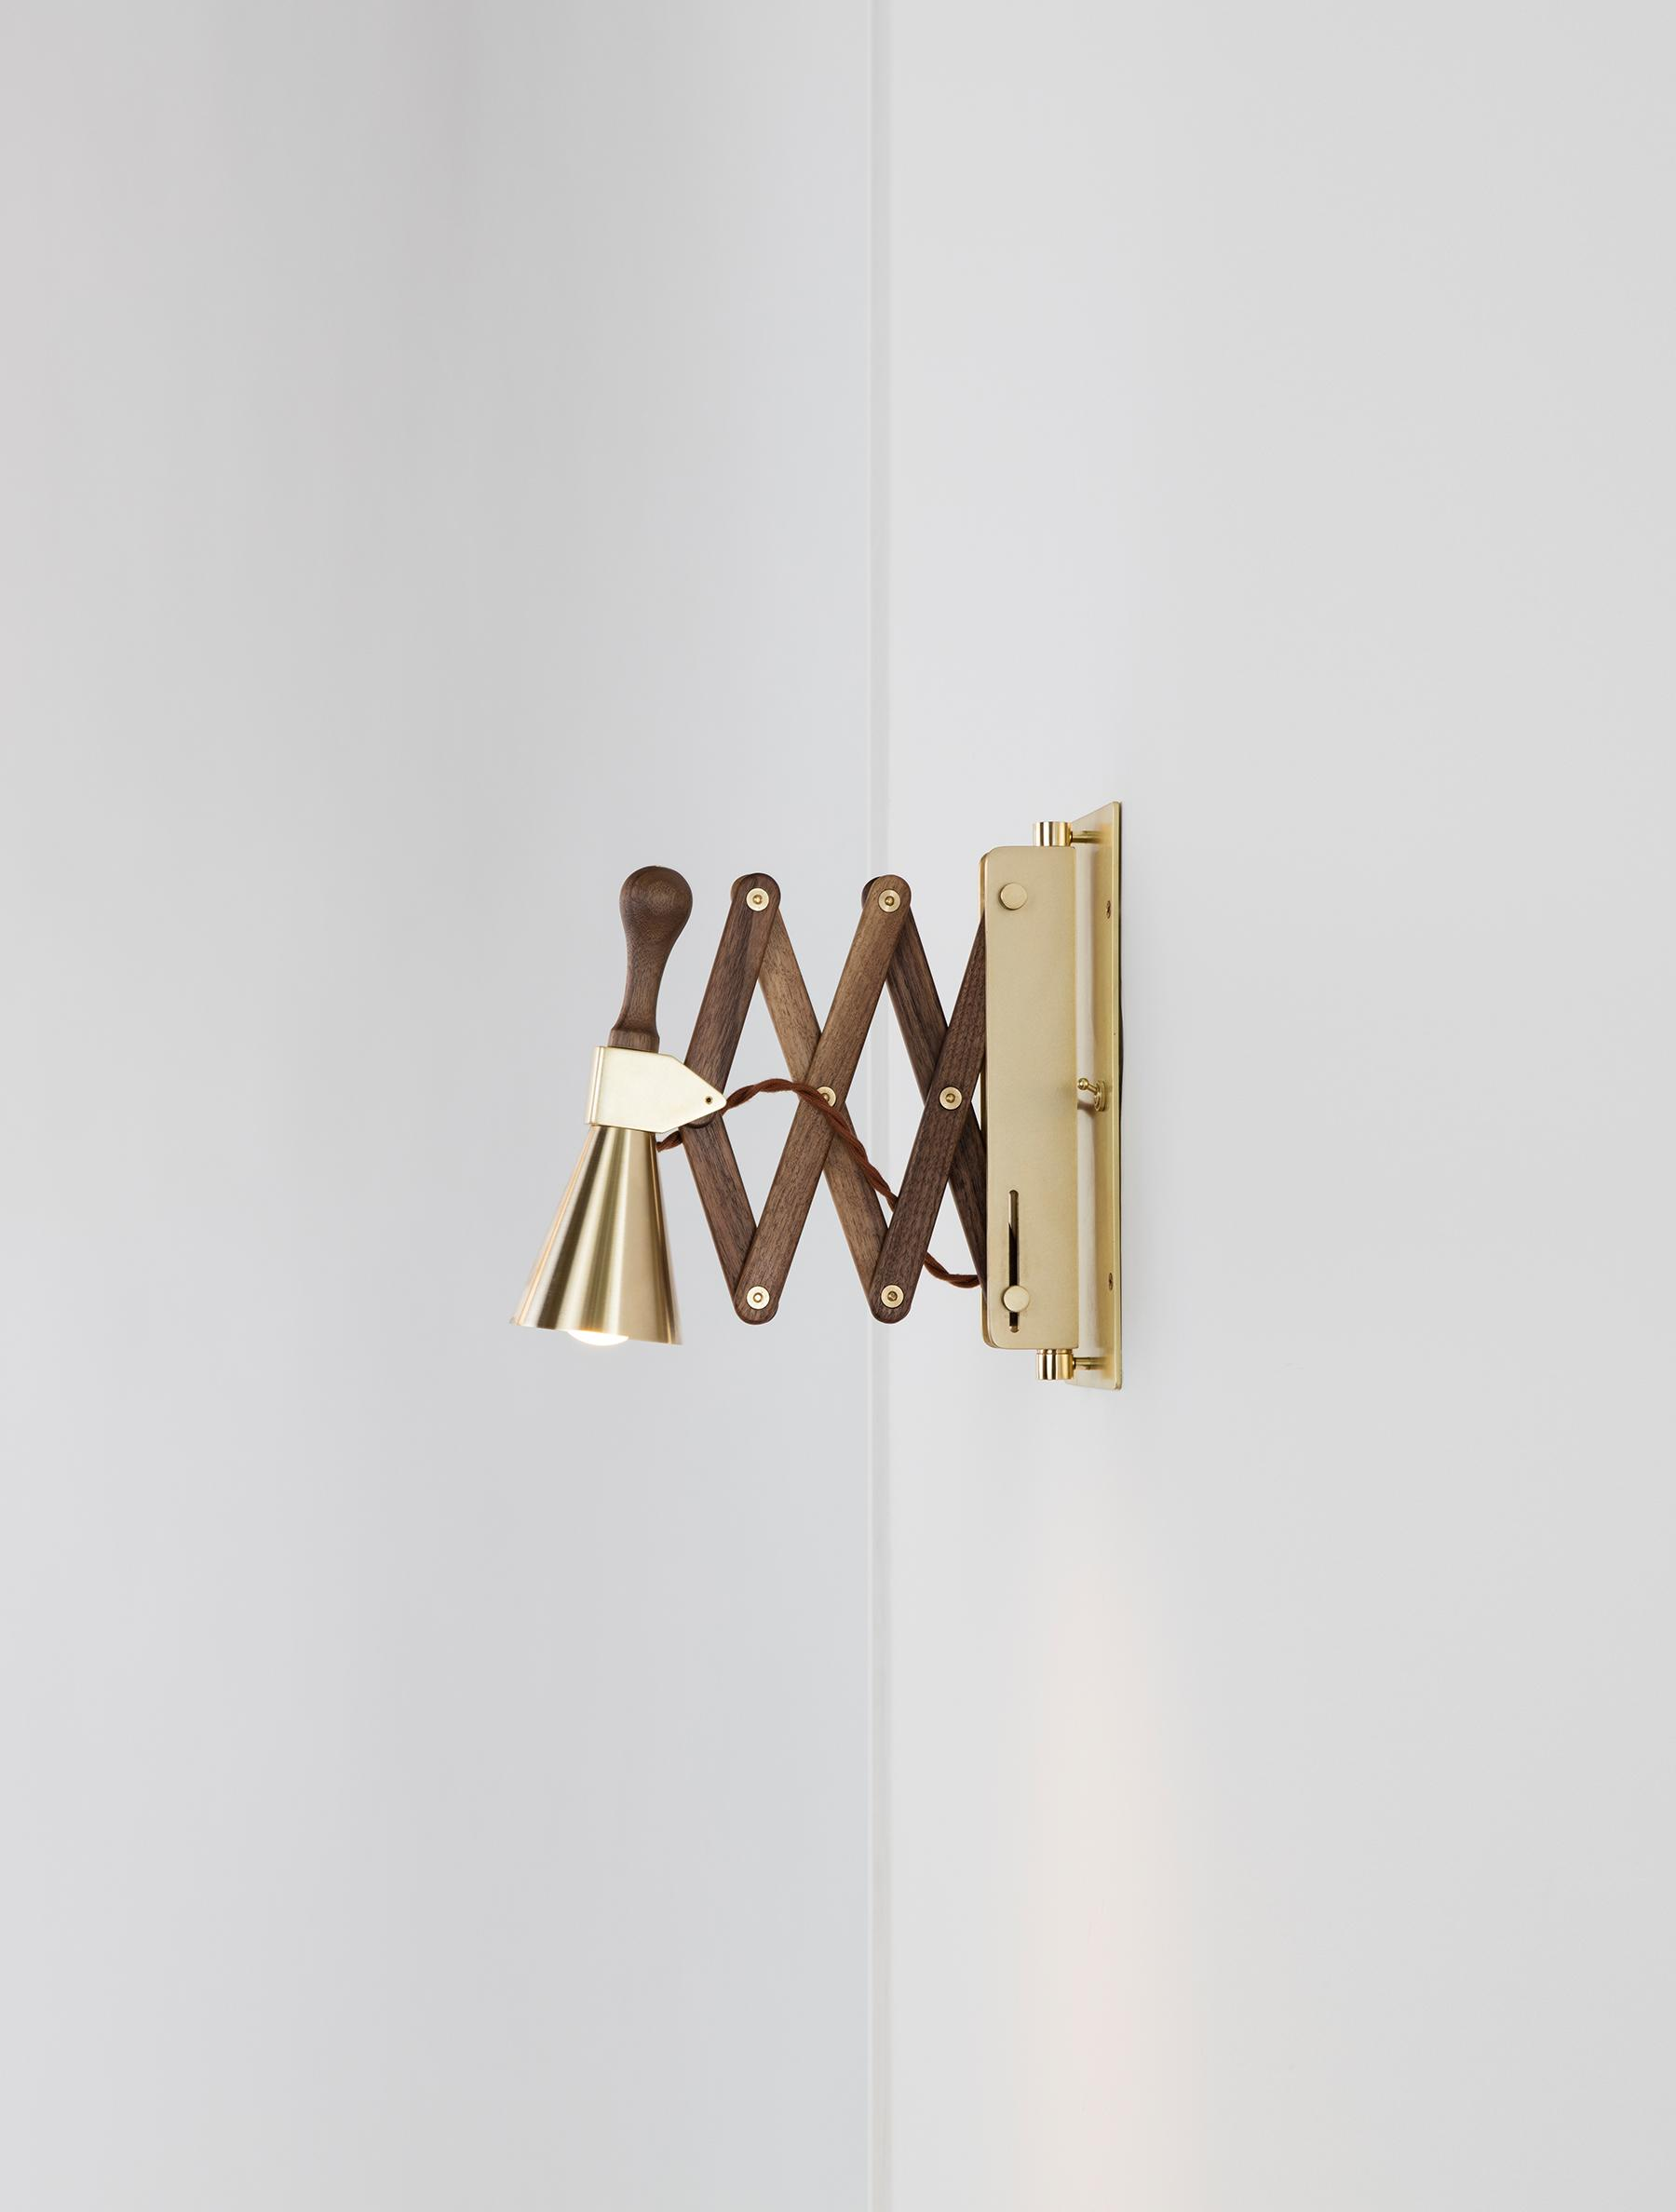 Accordion Bell Sconce shown in Brass, and Black Walnut